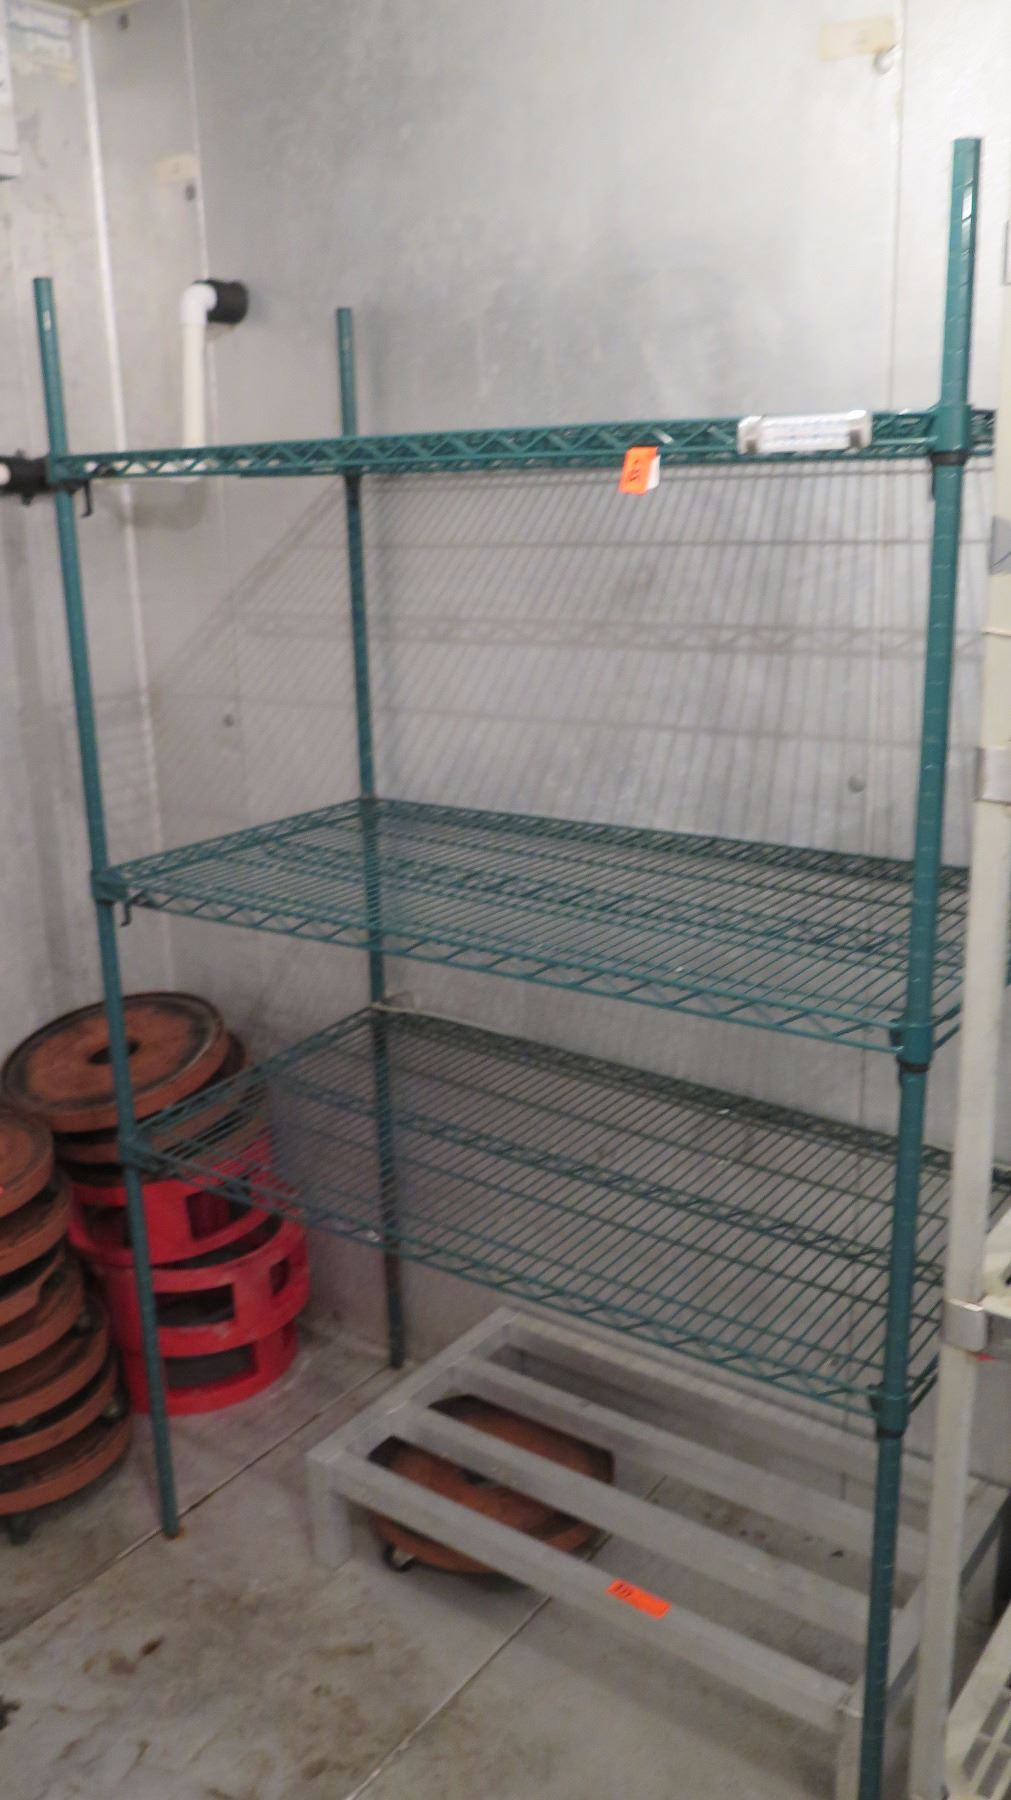 Green Wire Shelving Unit - 5 Shelves Approx. 47.5\